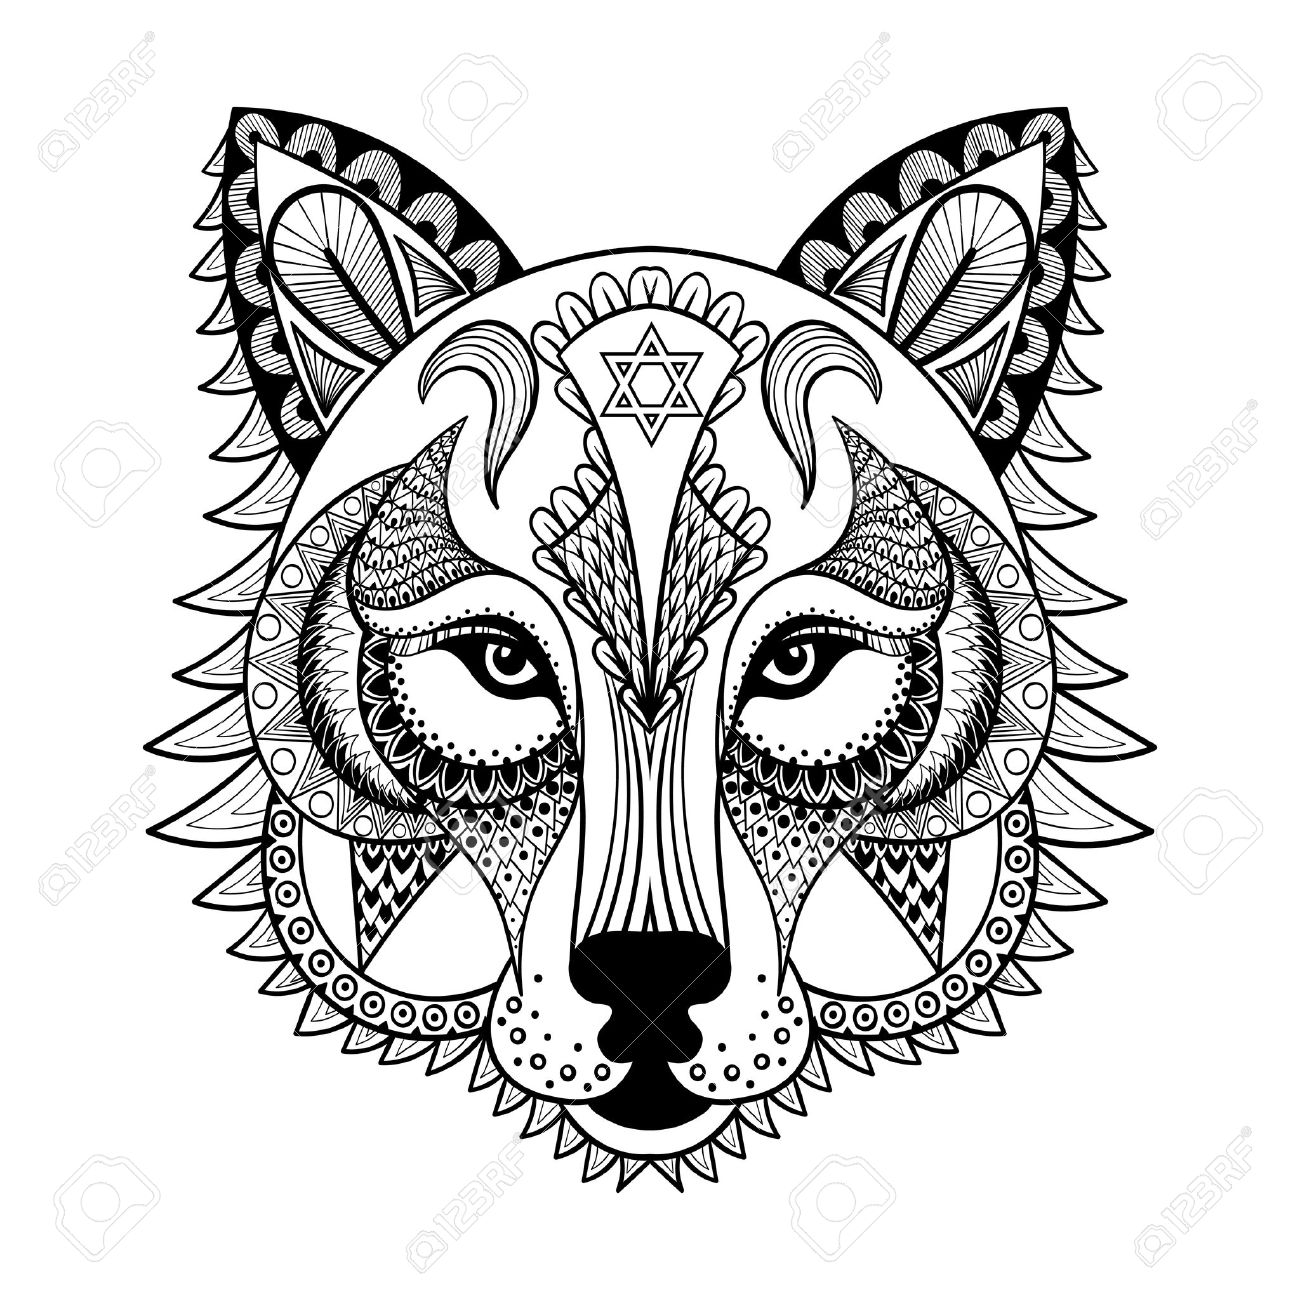 Coloring pages for down syndrome adults - Adult Vector Ornamental Wolf Ethnic Zentangled Mascot Amulet Mask Of A Werewolf